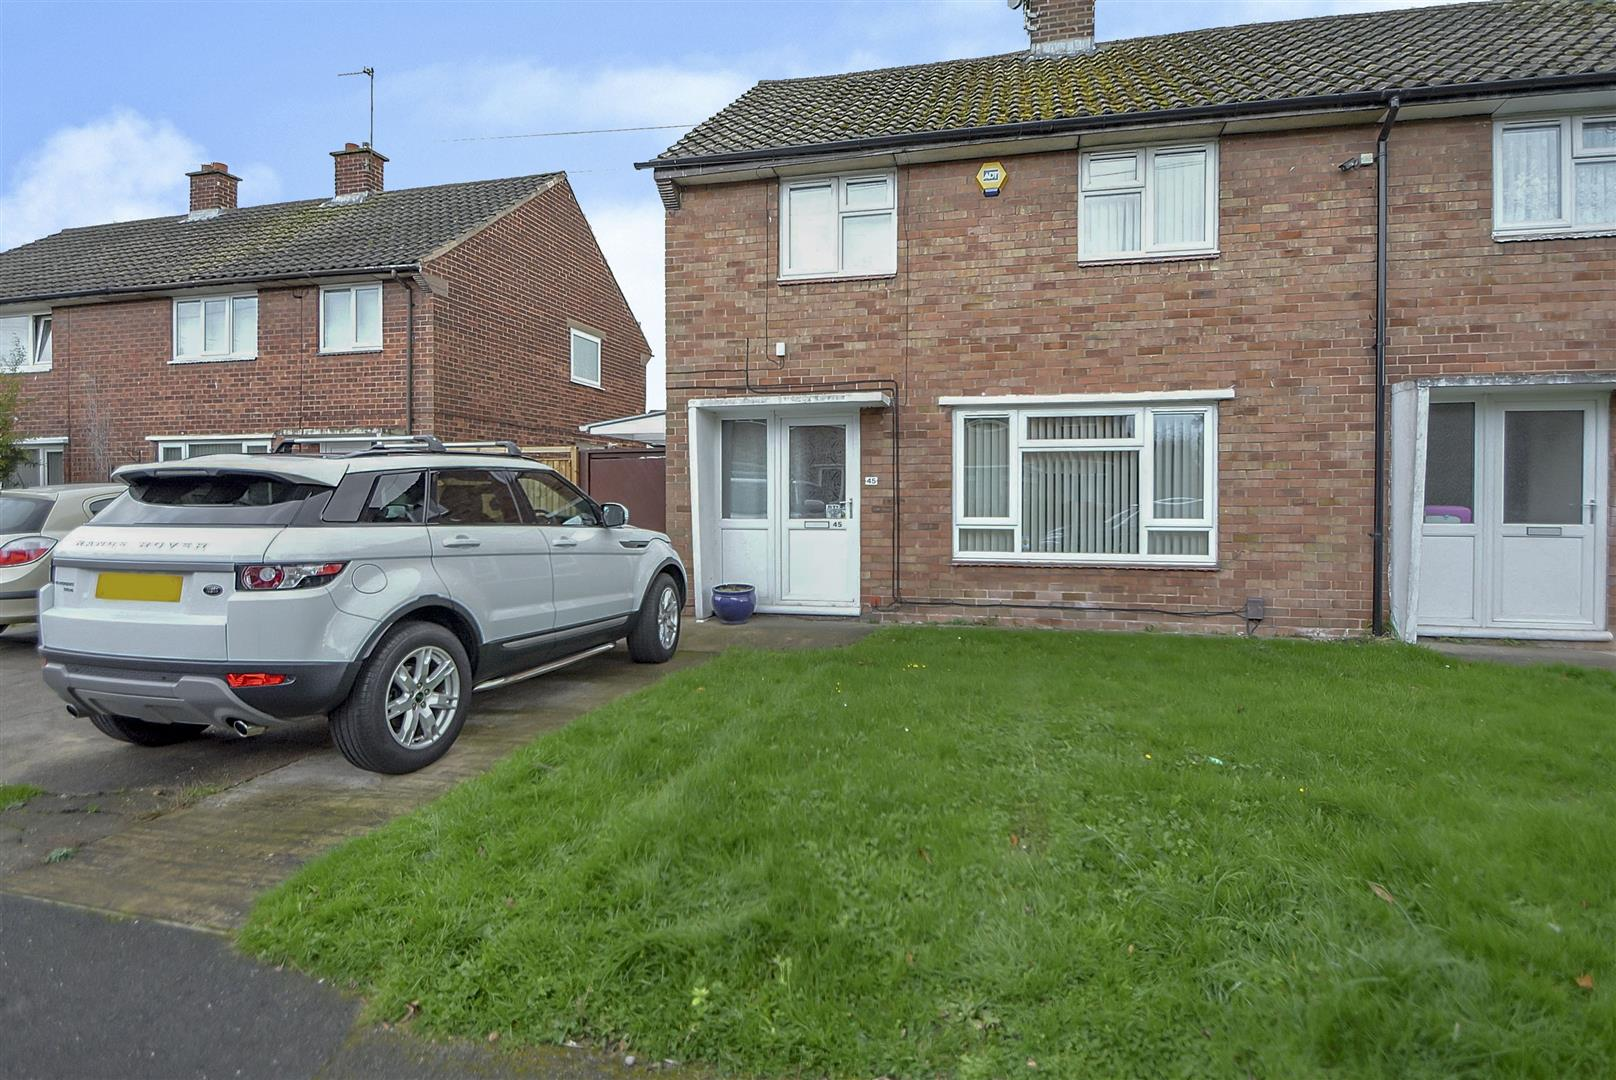 2 Bedrooms End Of Terrace House for sale in Baslow Close, Sawley